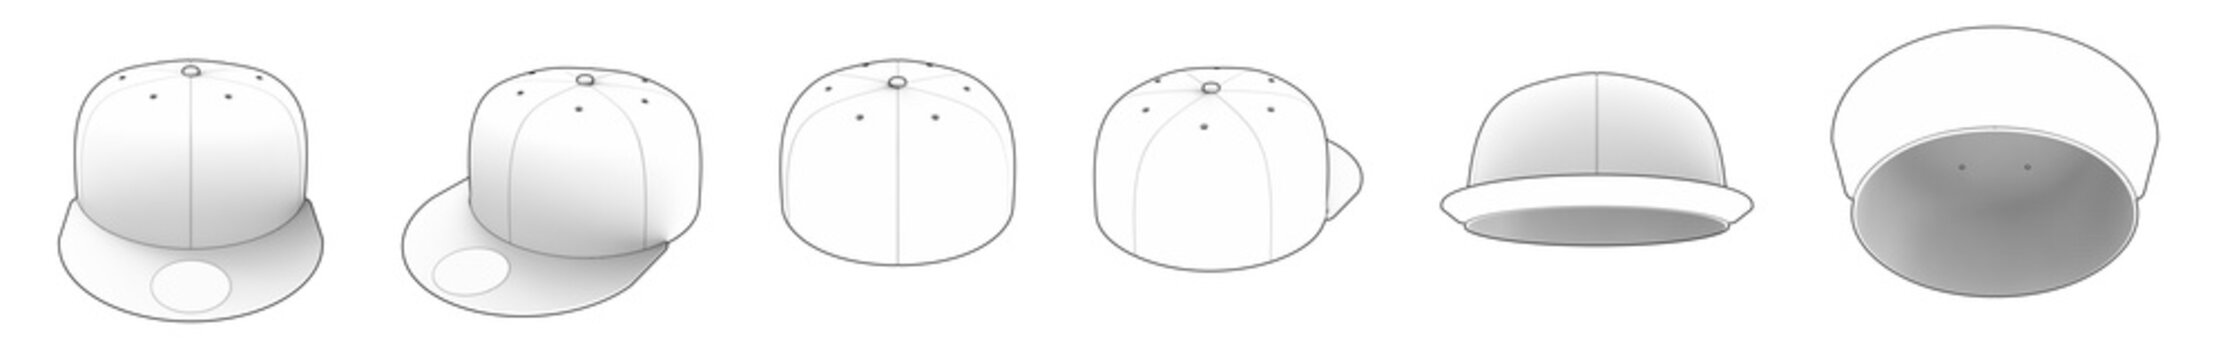 Set of Various Angles of White Empty New Era SnapBack Hats Isolated on a White Background. Drawing Style 3D MockUp.